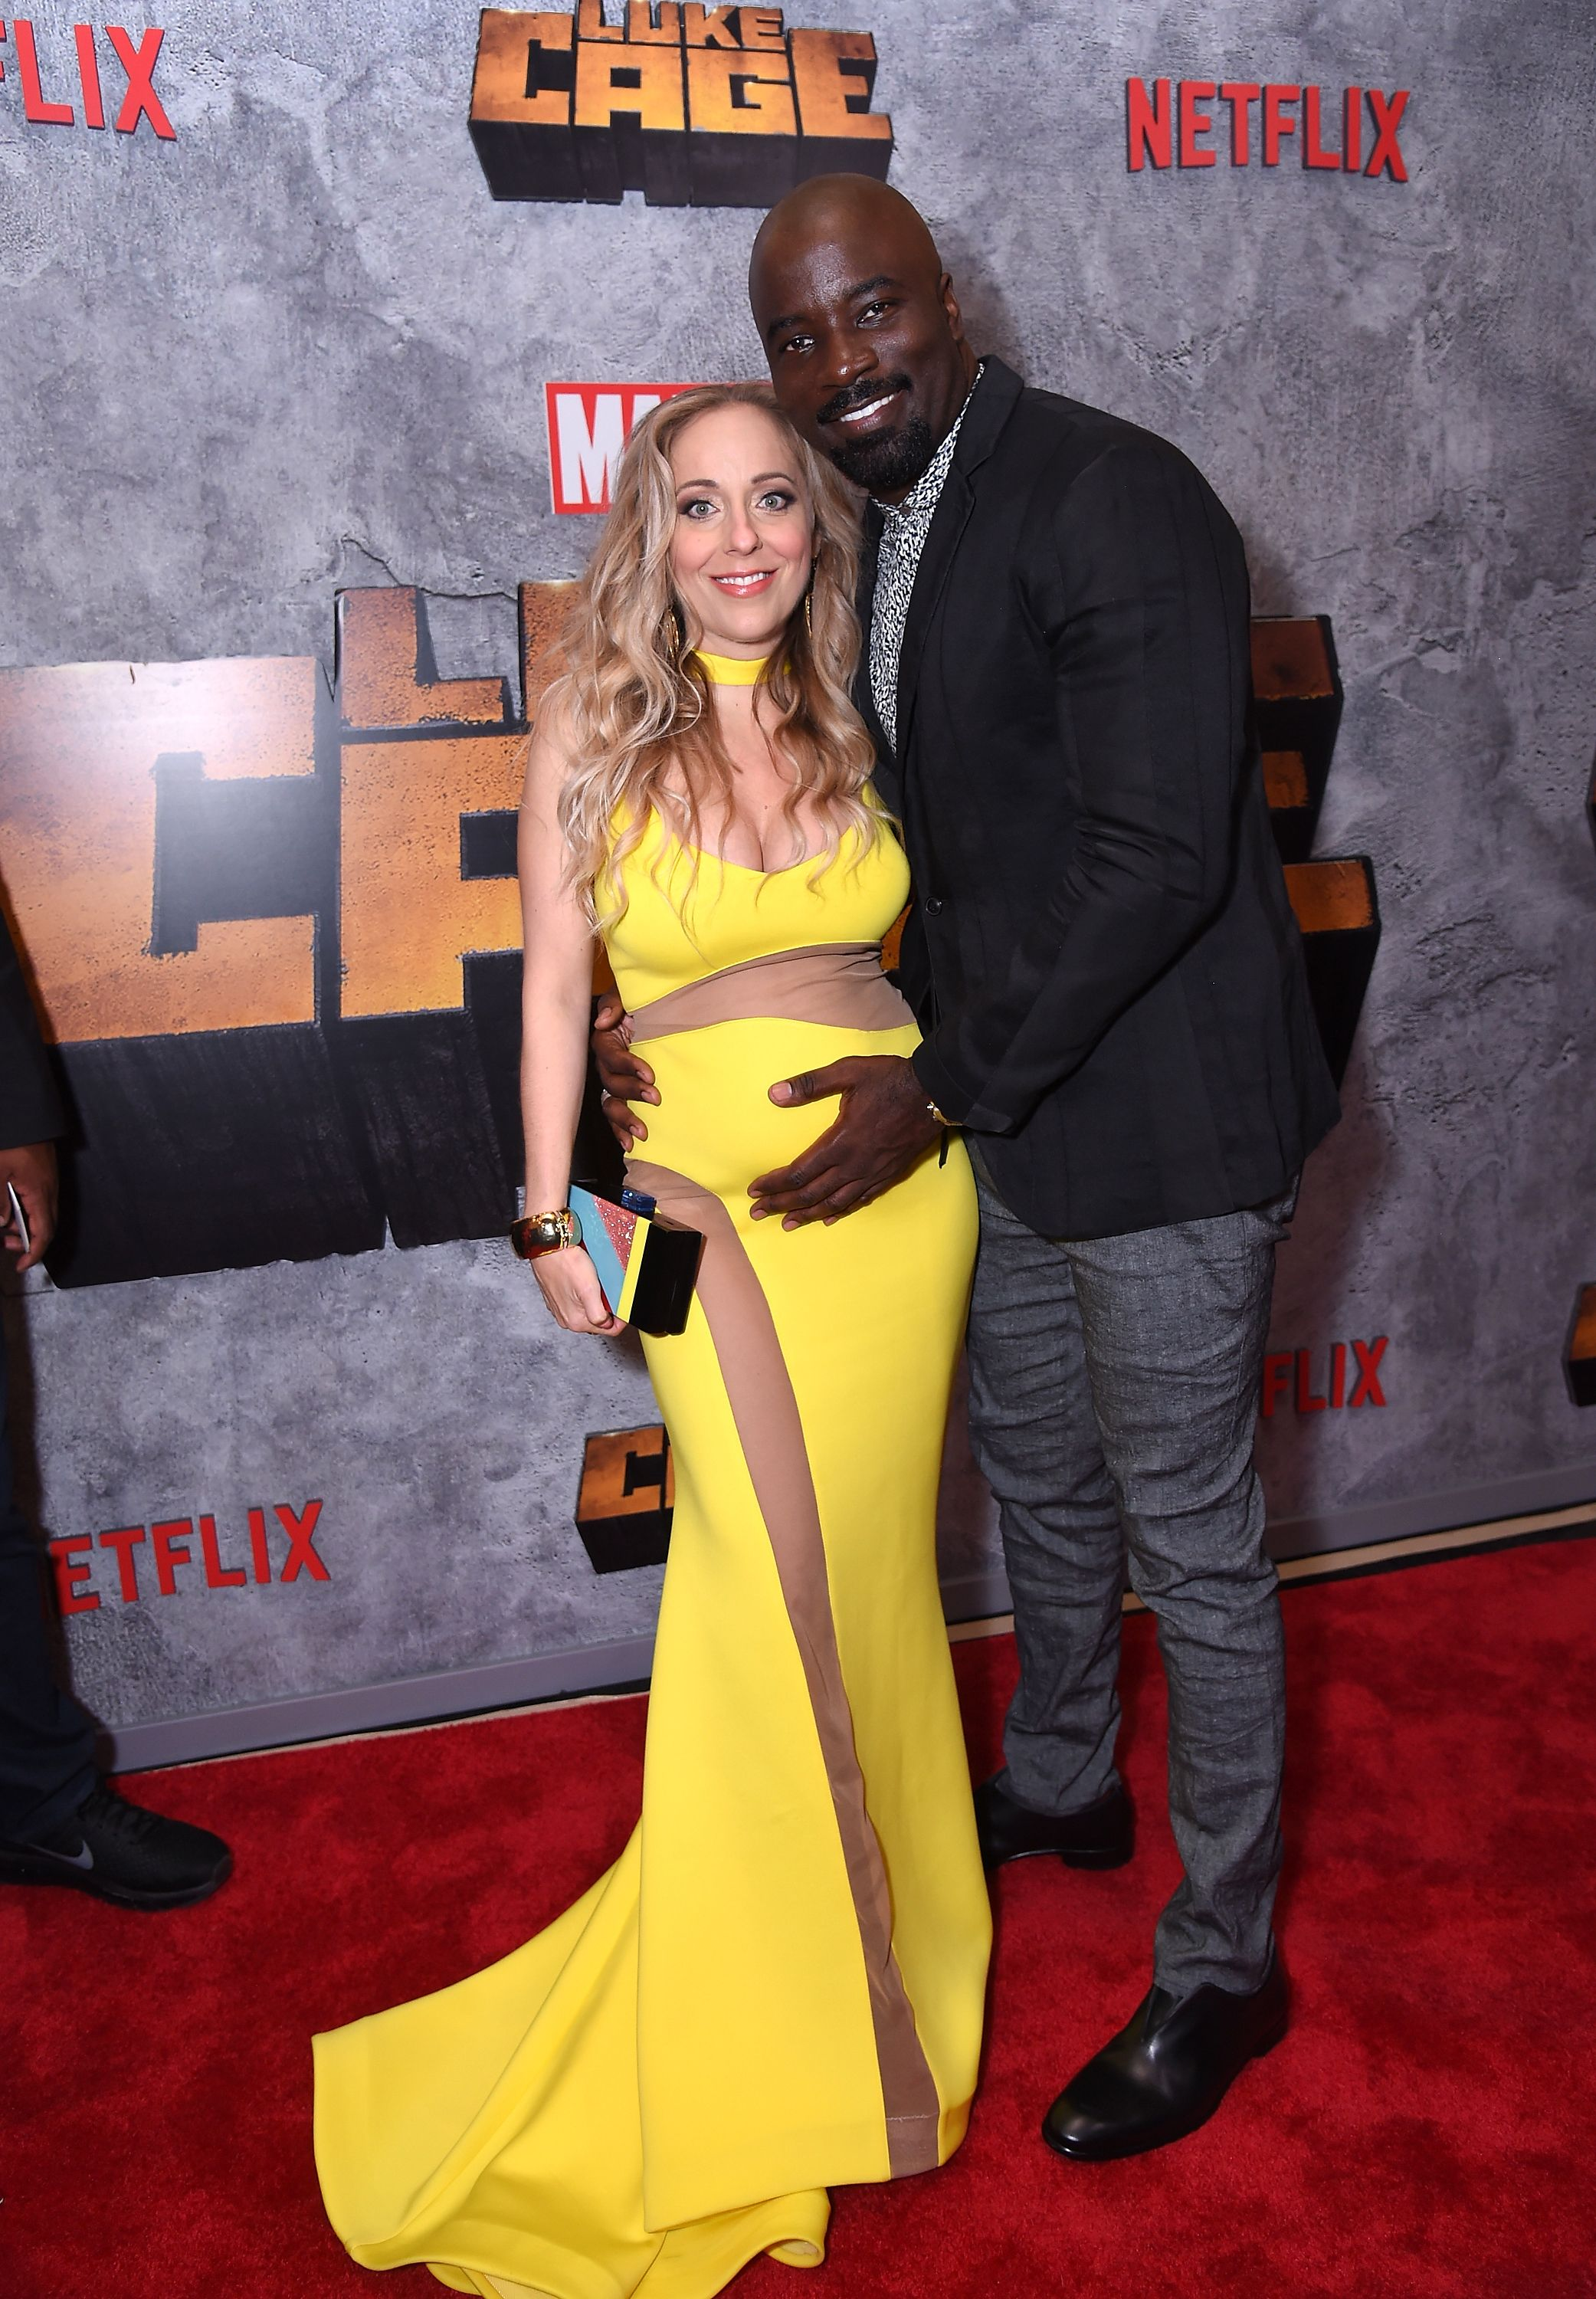 """Iva and Mike Colter at the Netflix Original Series """"Marvel's Luke Cage"""" season 2 New York City premiere on June 21, 2018, in New York City 